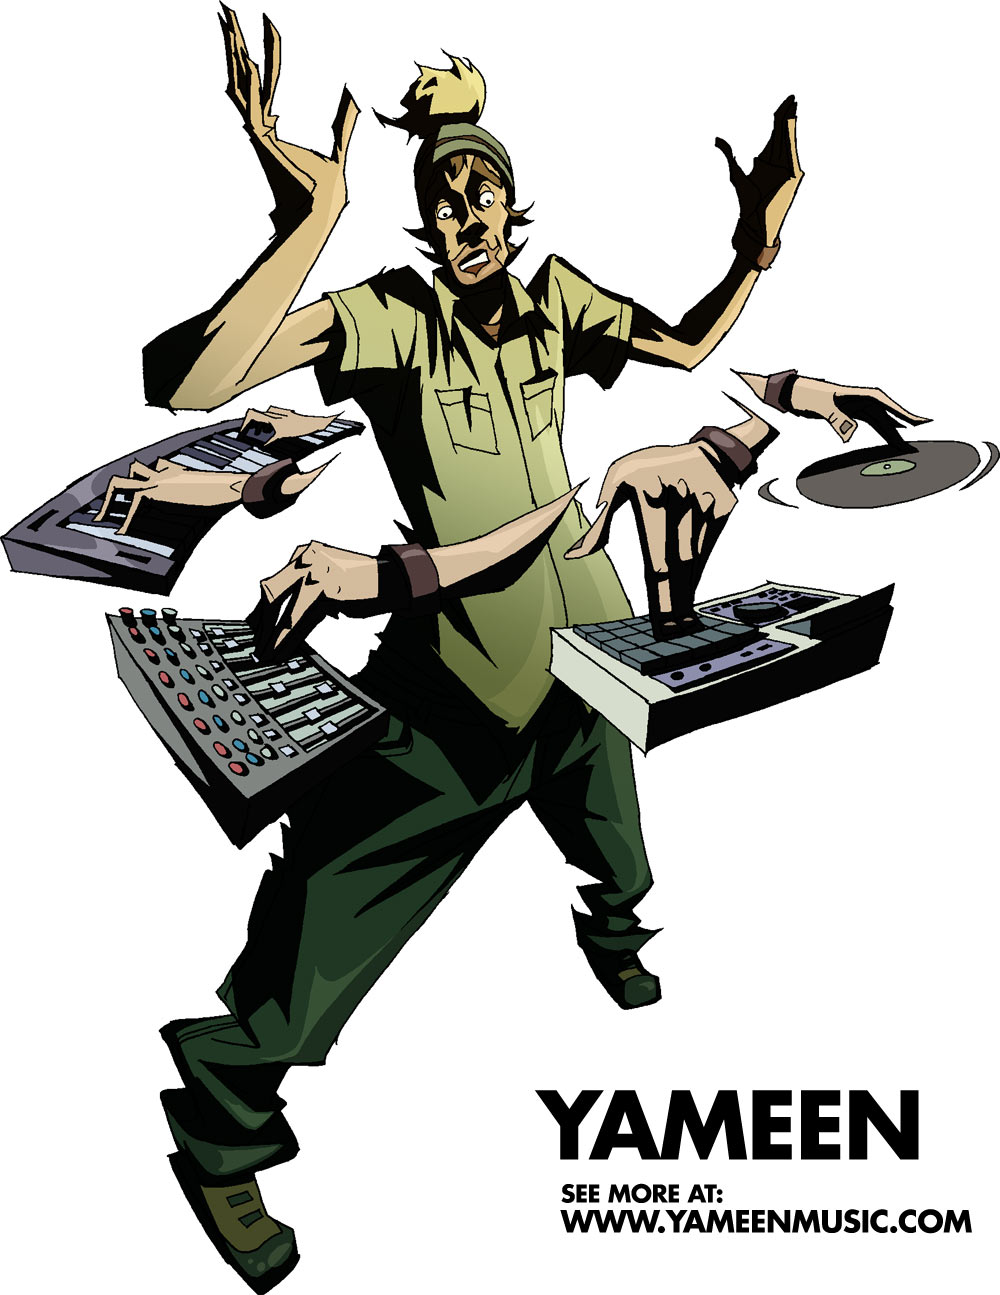 Yameen - Anime Video - Pic #3